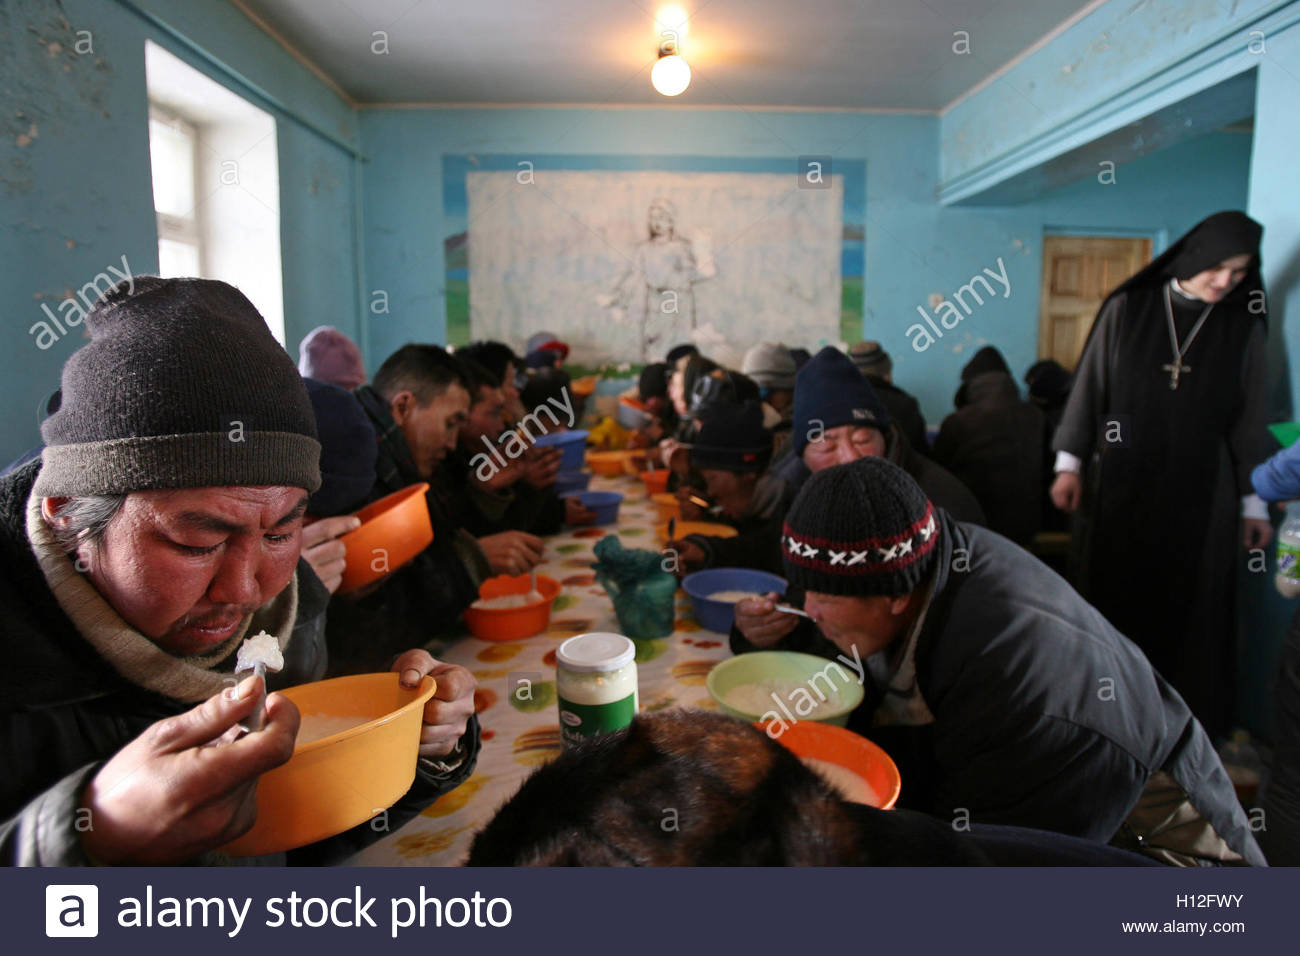 Soup Kitchen Meal Mongolians Receive A Free Meal Distributed By Nuns At A Soup